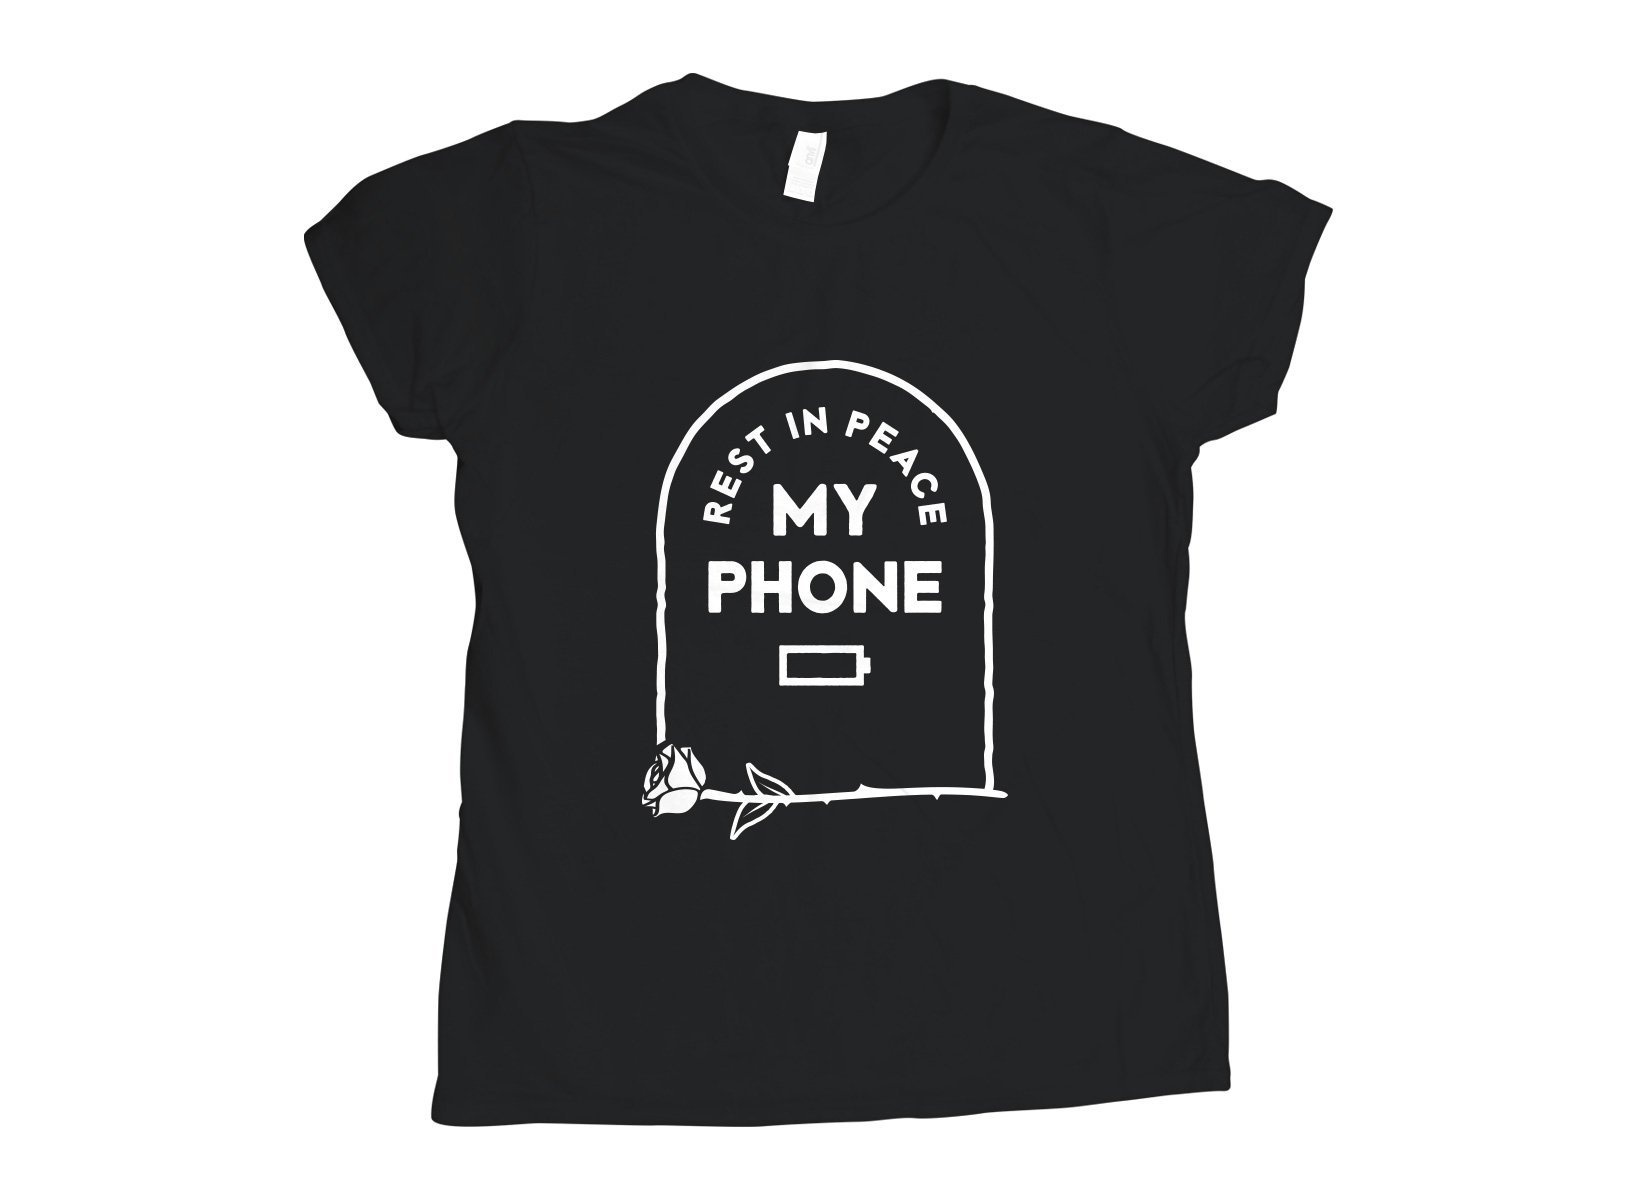 RIP My Phone on Womens T-Shirt